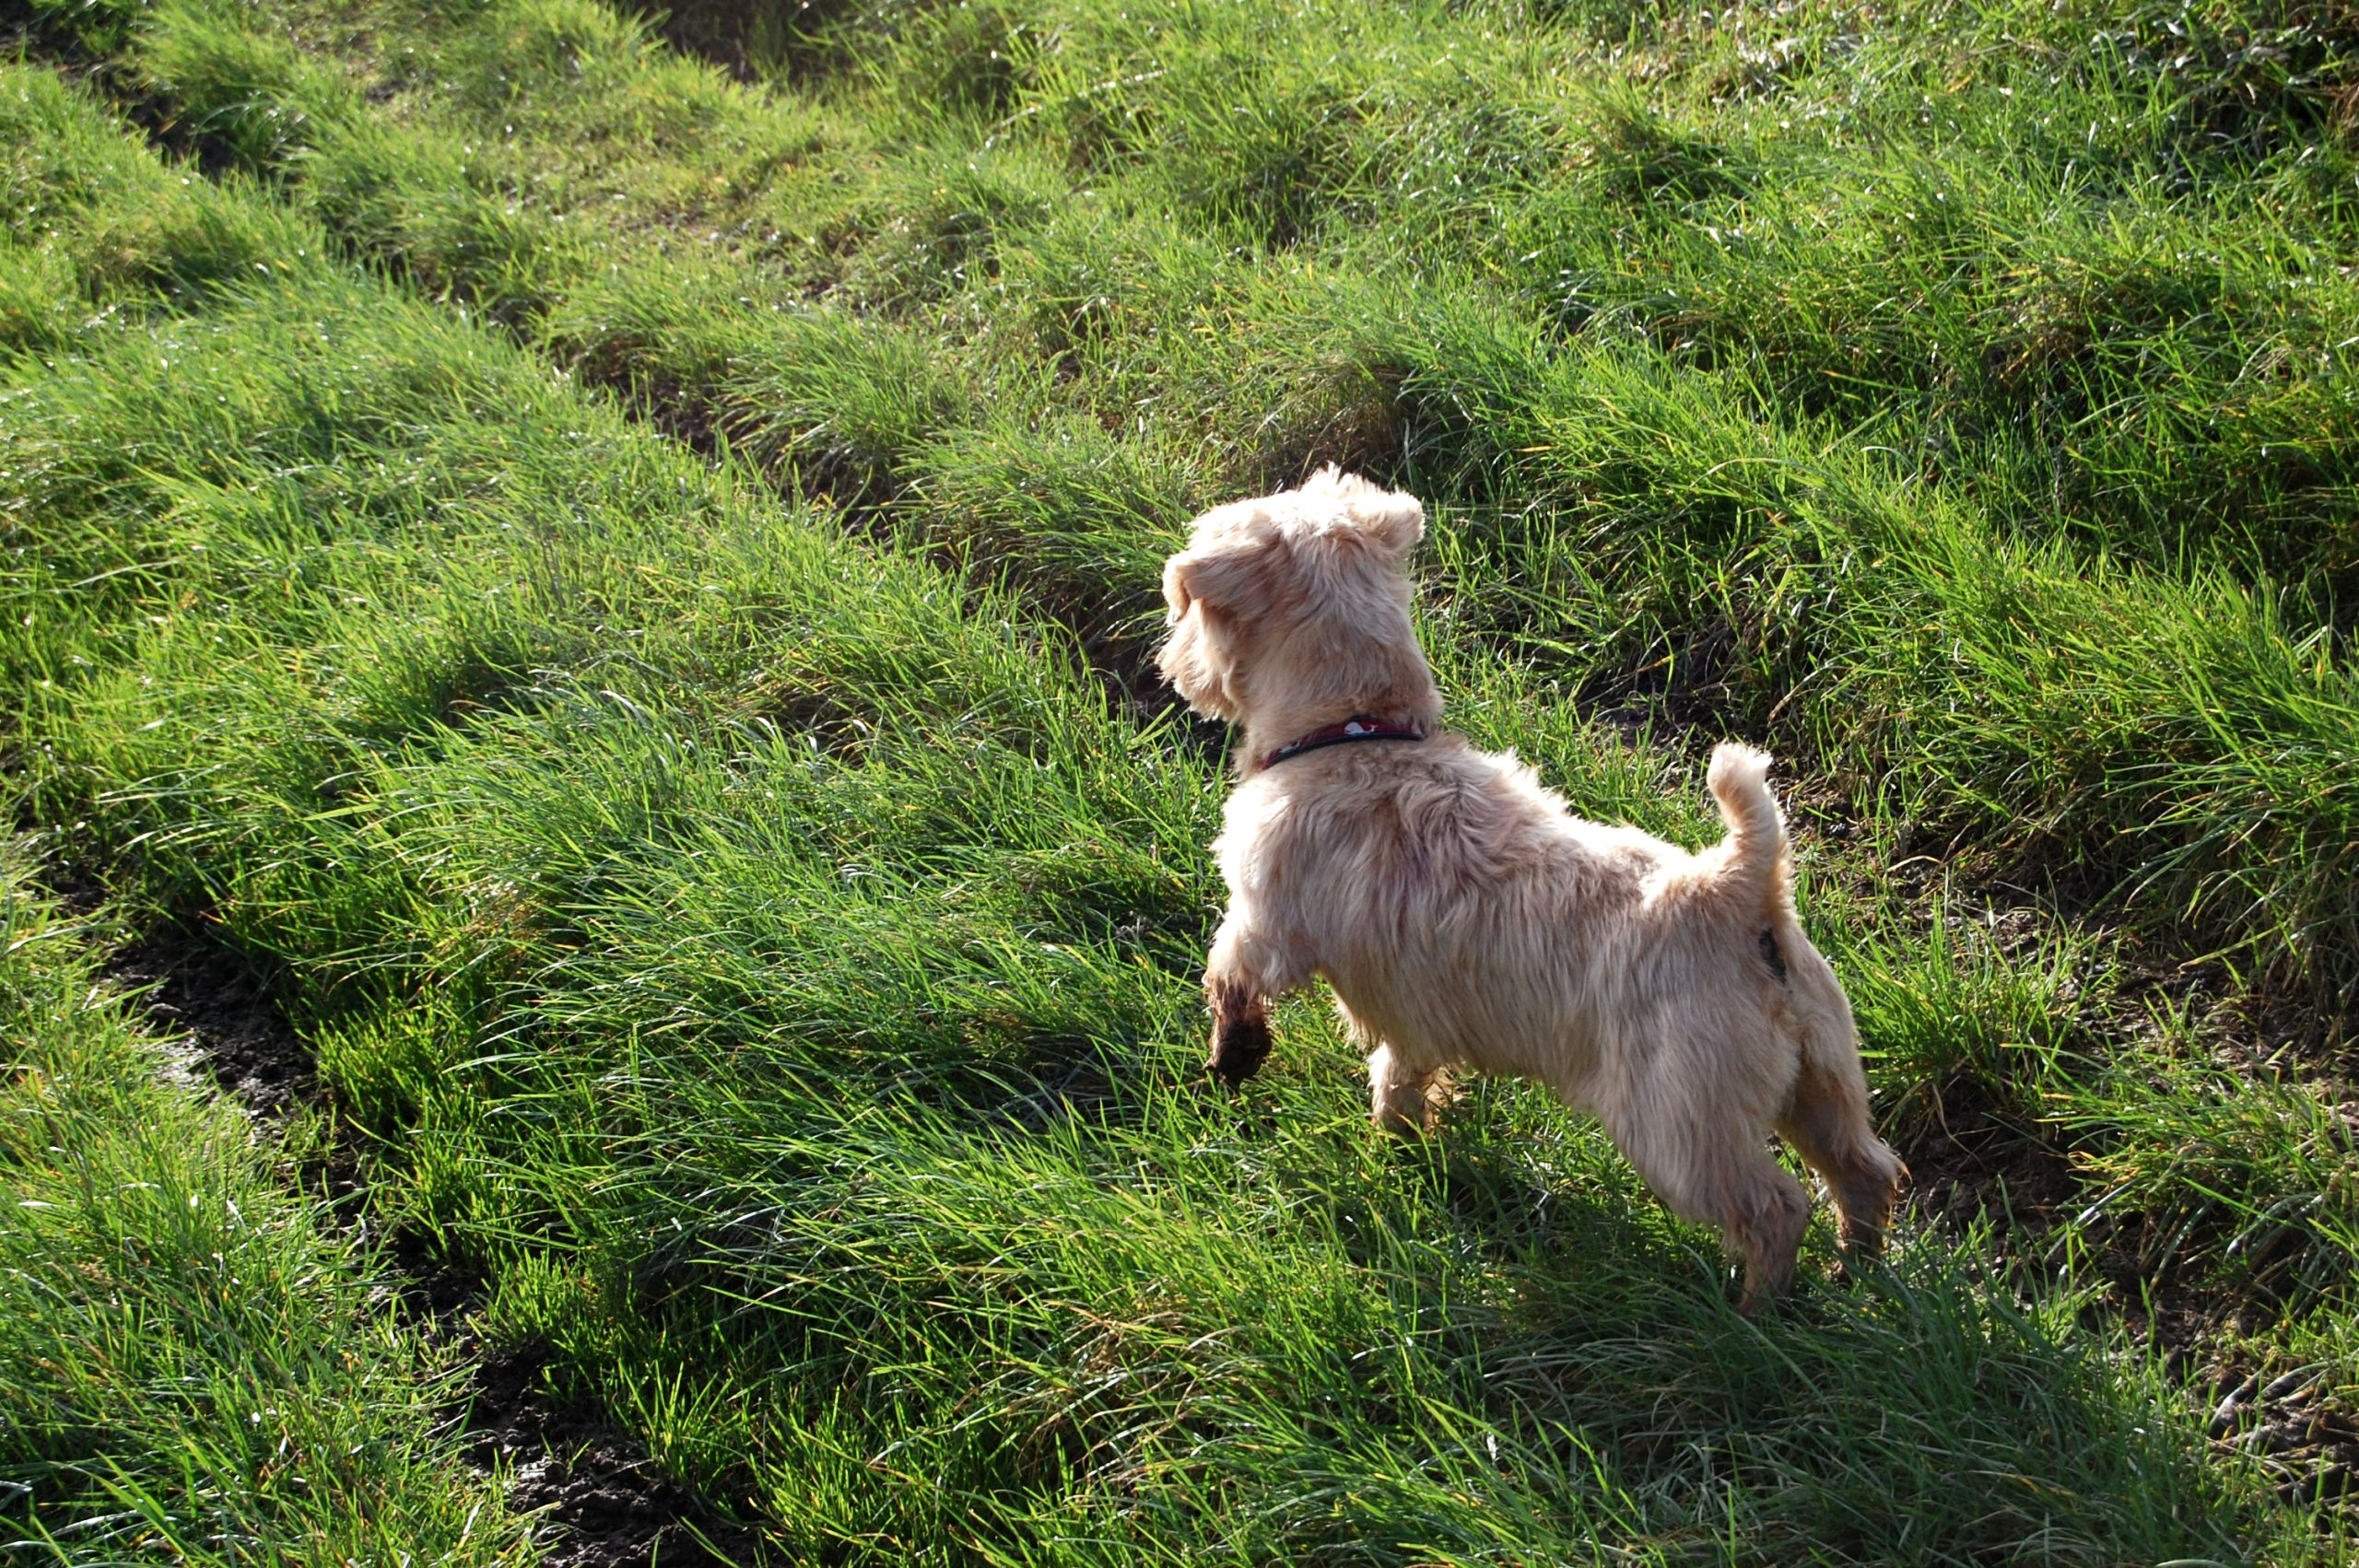 How to cool dogs down - walk them early in the morning or later in the evening when it is cooler